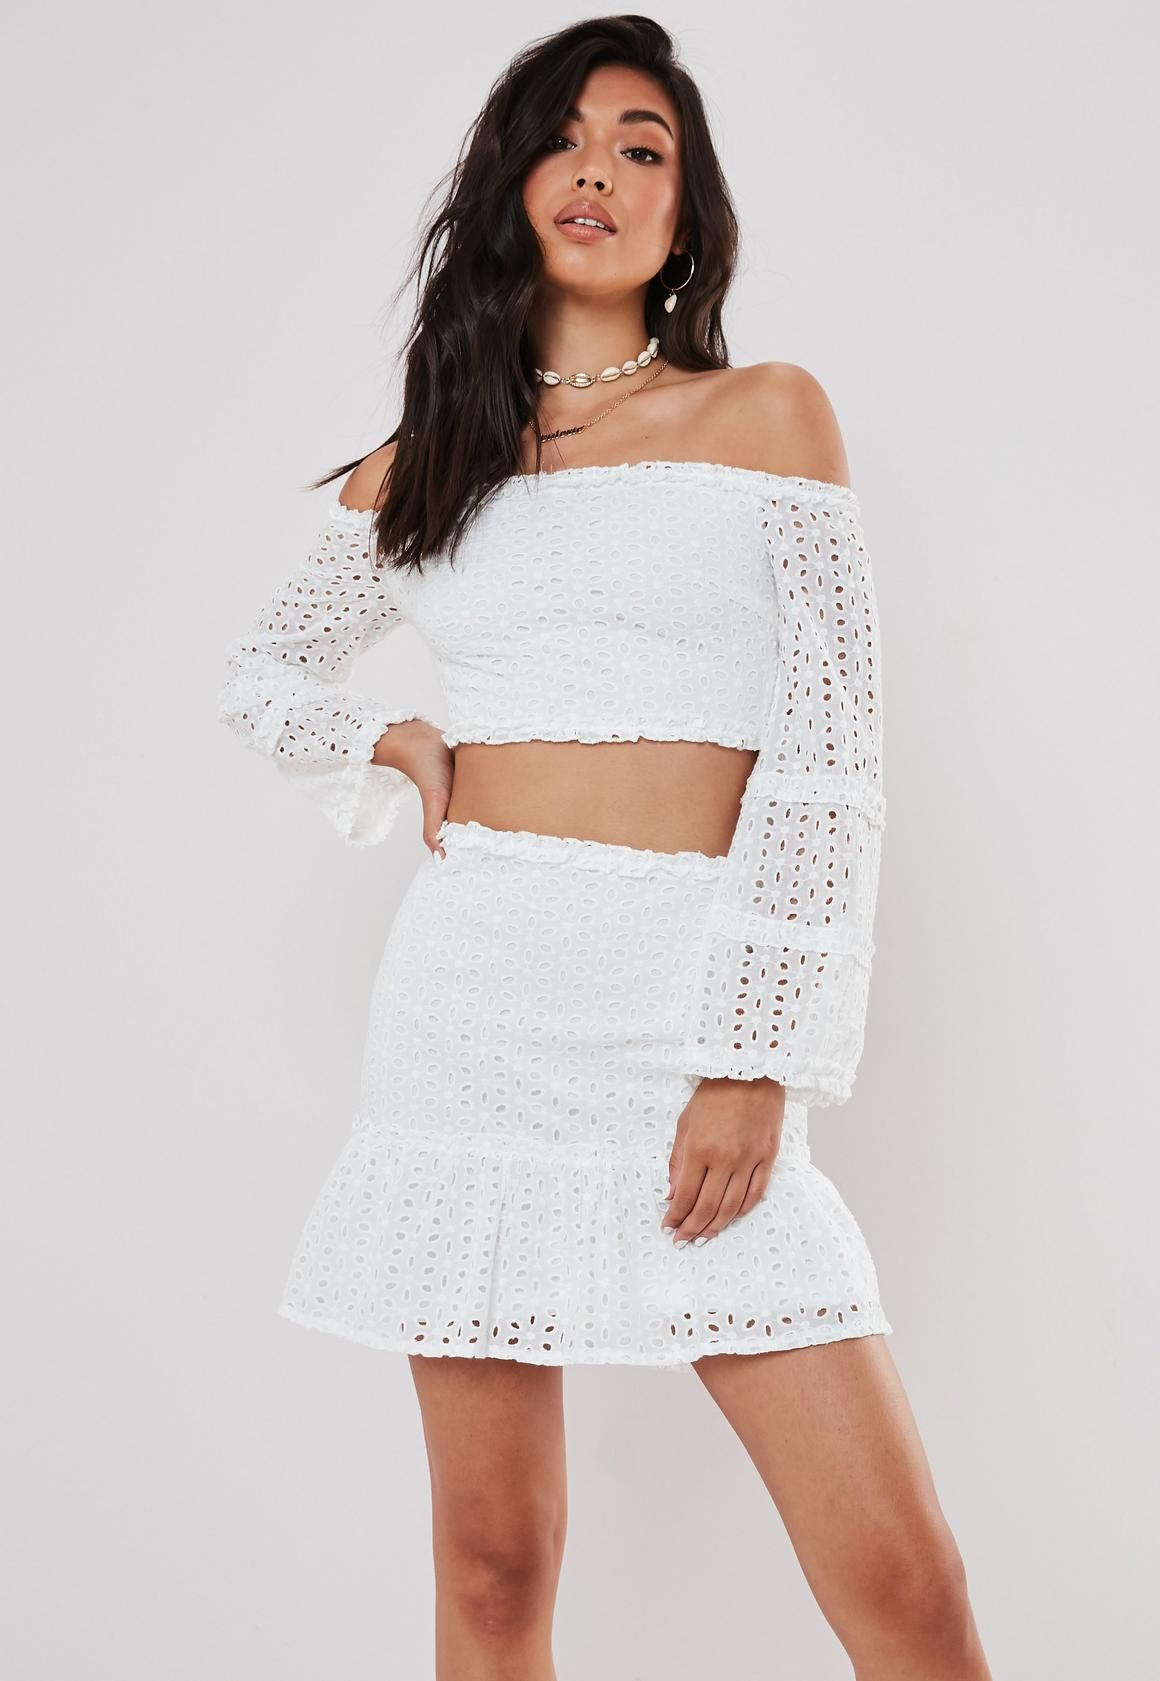 5b6a2542c1 White Broderie Anglais Crop Top and Frill Skirt Co ord Set in 2019 |